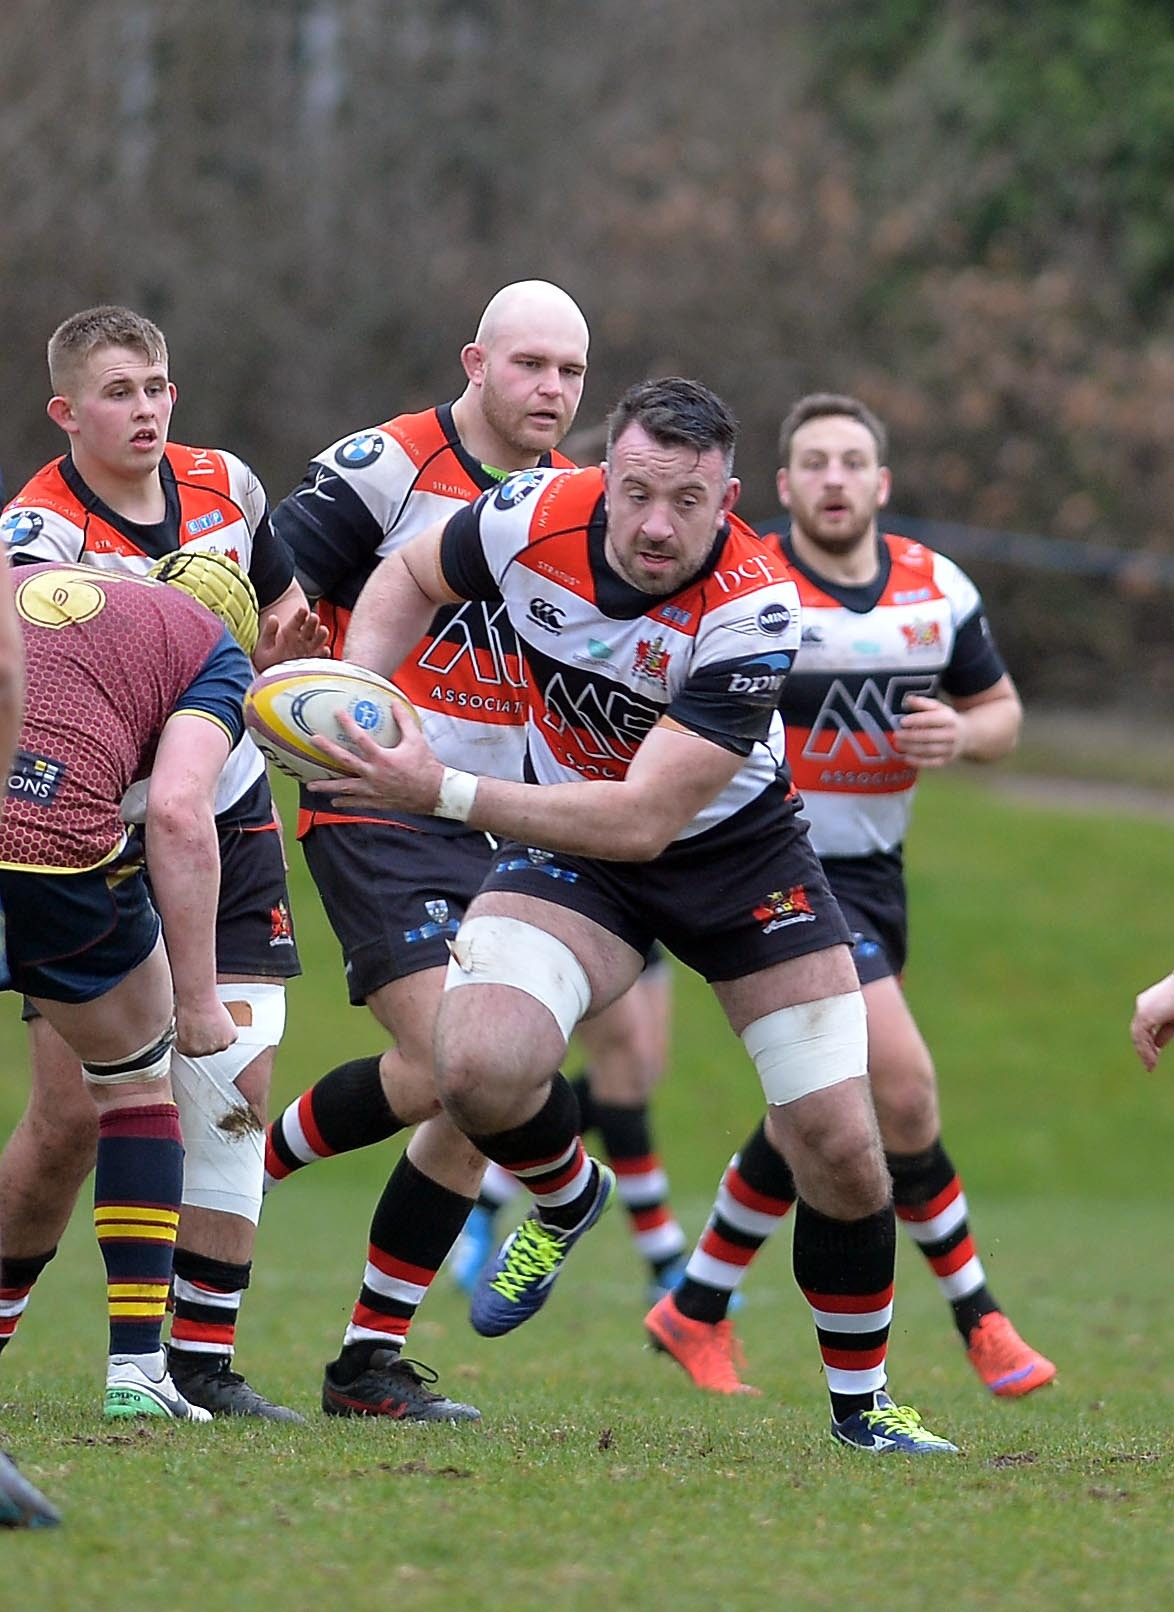 Pontypool's Brendan Lampitt was among the try scorers in Saturday's win at Narberth which sealed Pooler's amazing unbeaten league campaign. File picture: www.christinsleyphotography.co.uk